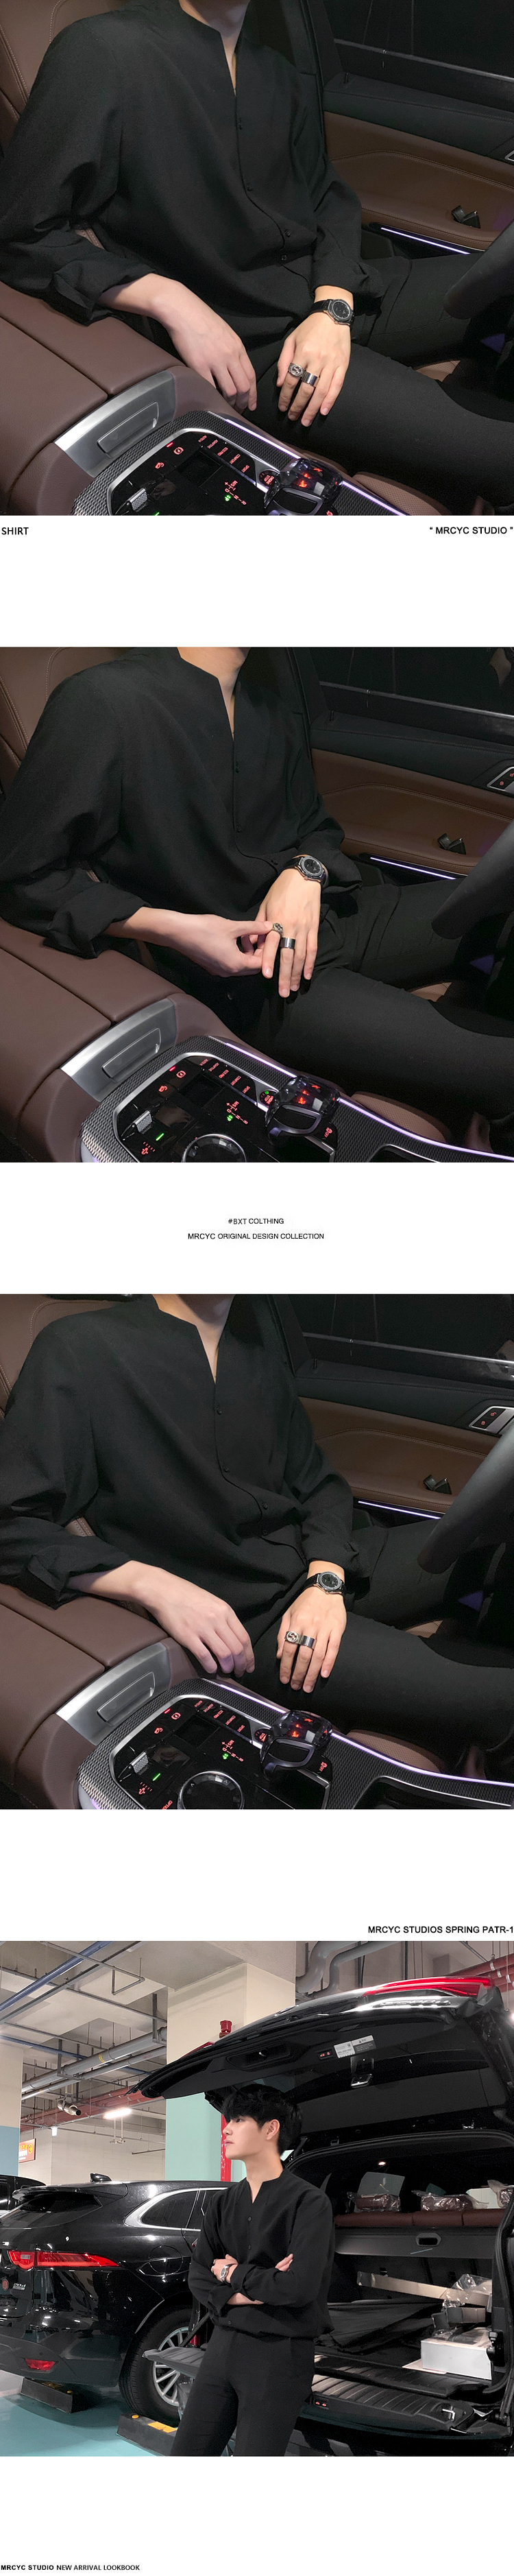 H8631c49a77184eb6a71388465fb734a2b IEFB /men's wear 2020 autumn casual stand collar solid color shirt for male Personality Trend Handsome Long Sleeve s 9Y899